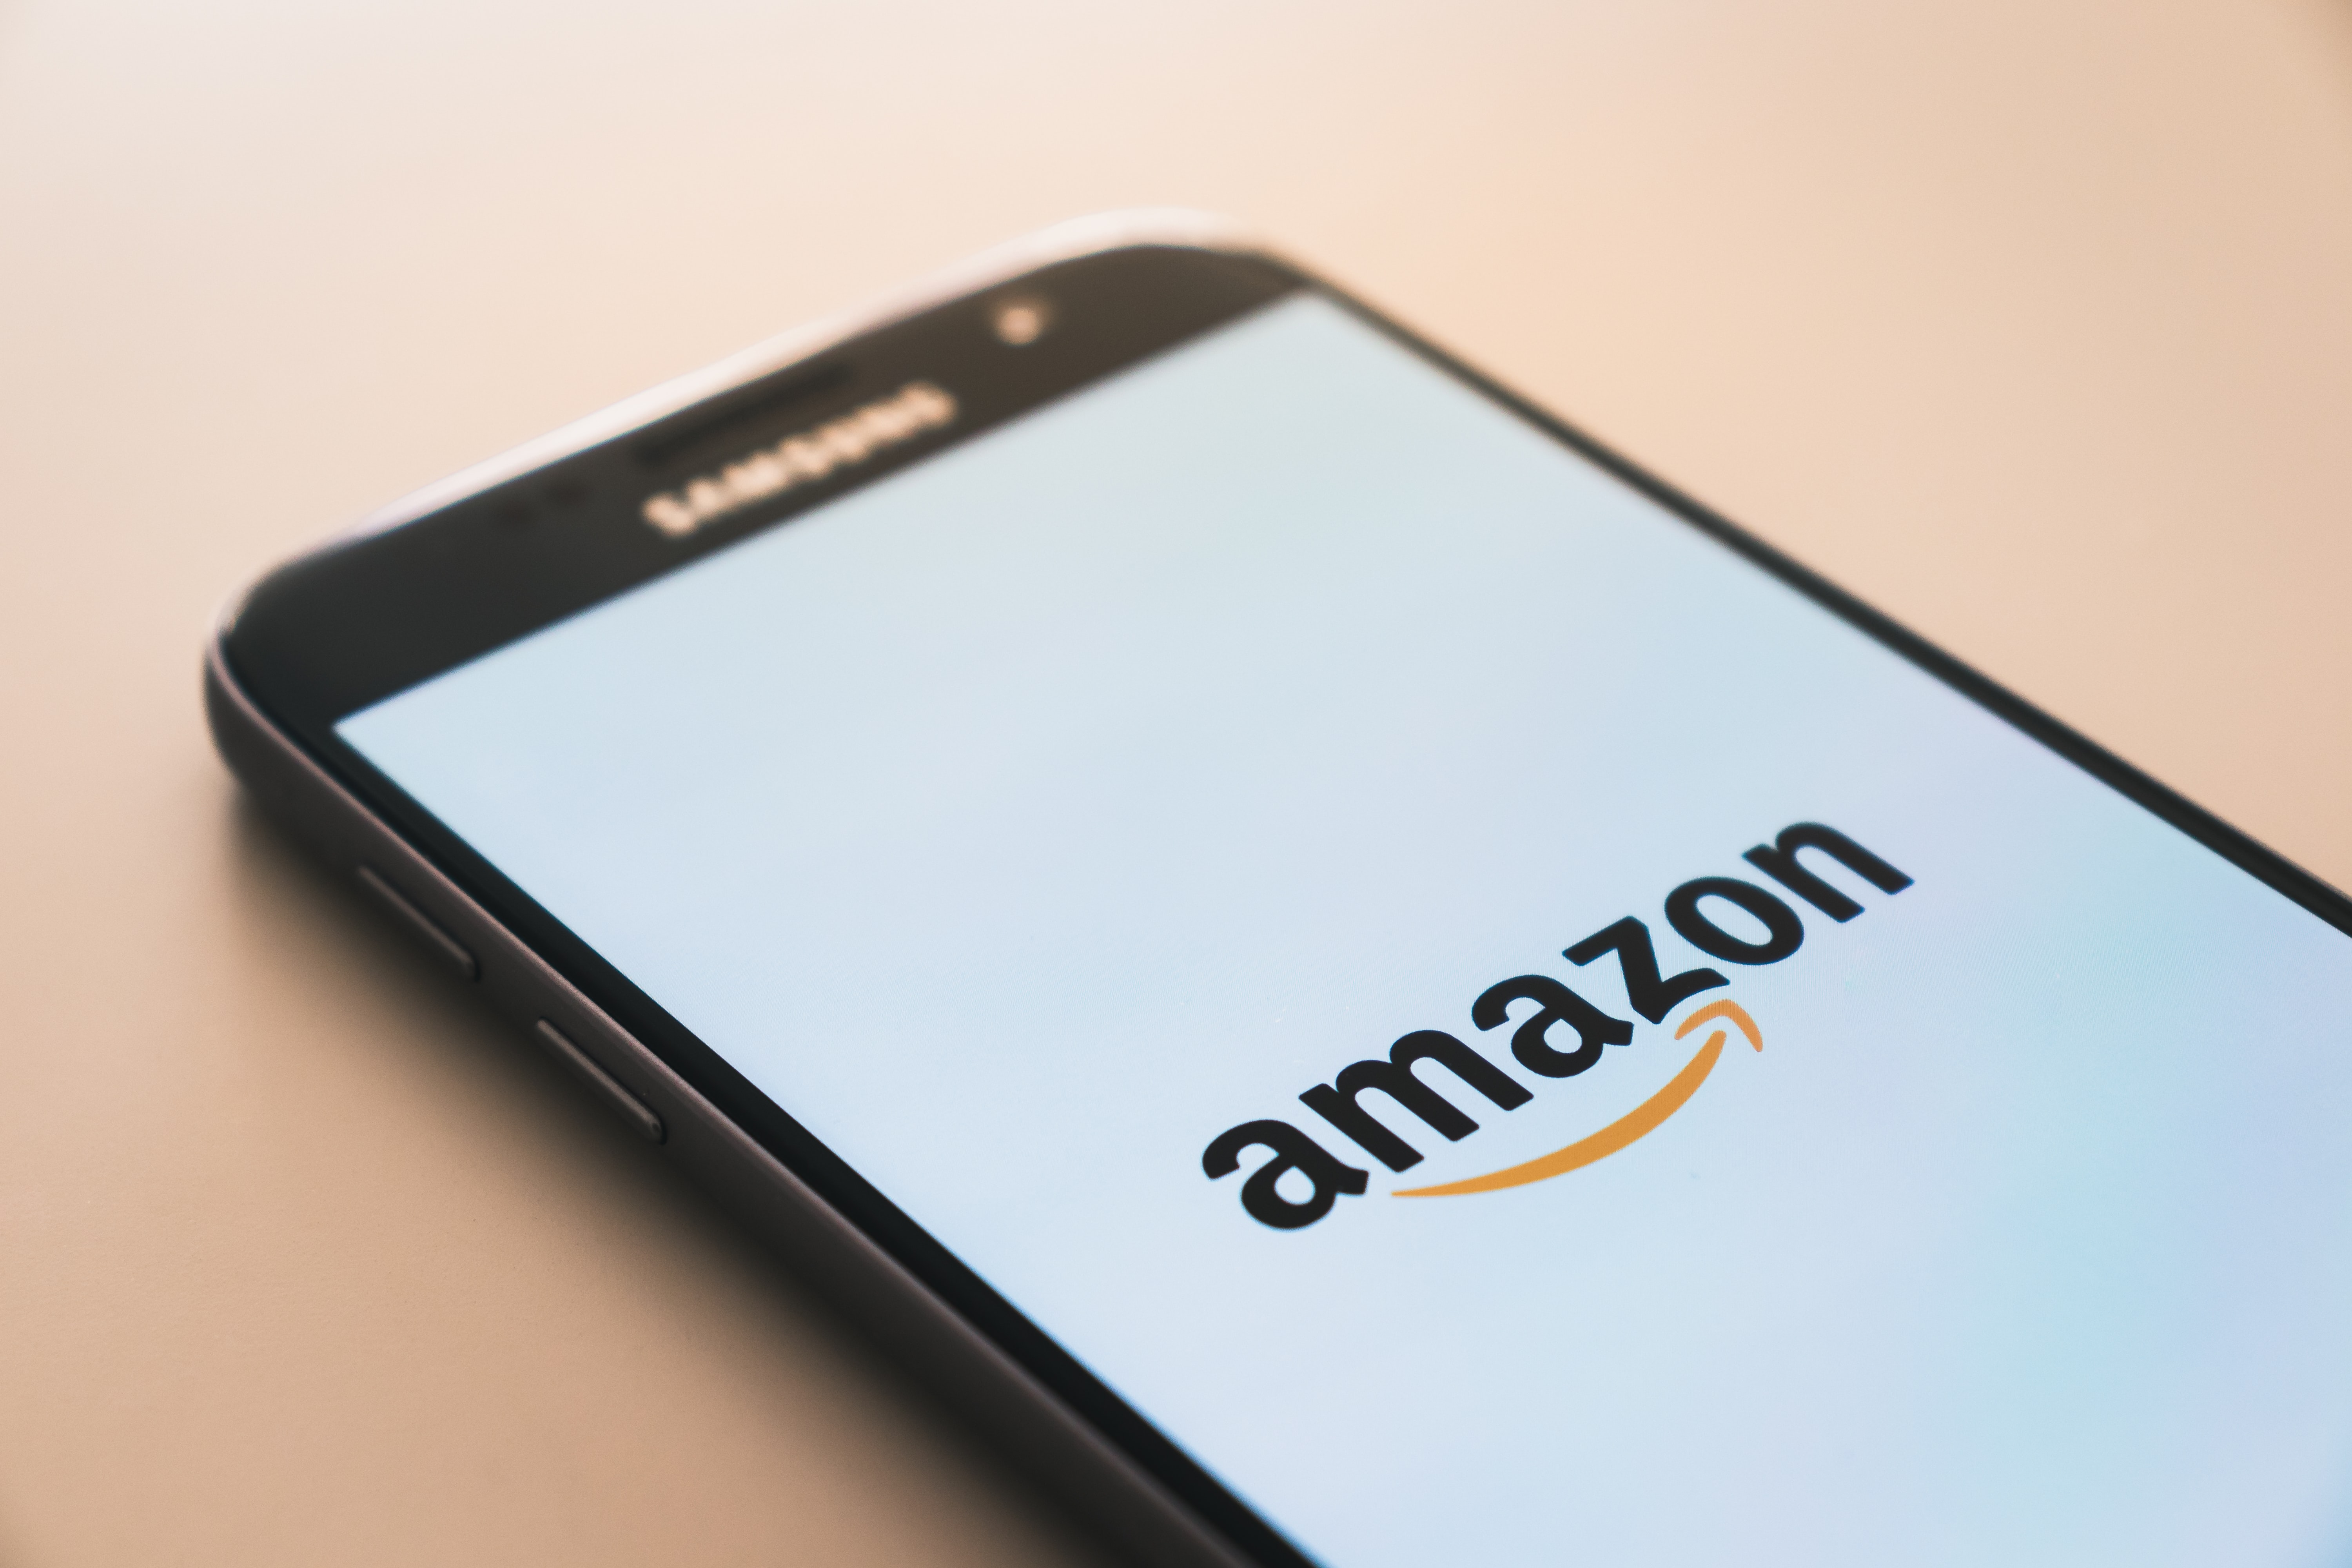 Benedict Evans take on: Amazon - does it have a profitability issue?